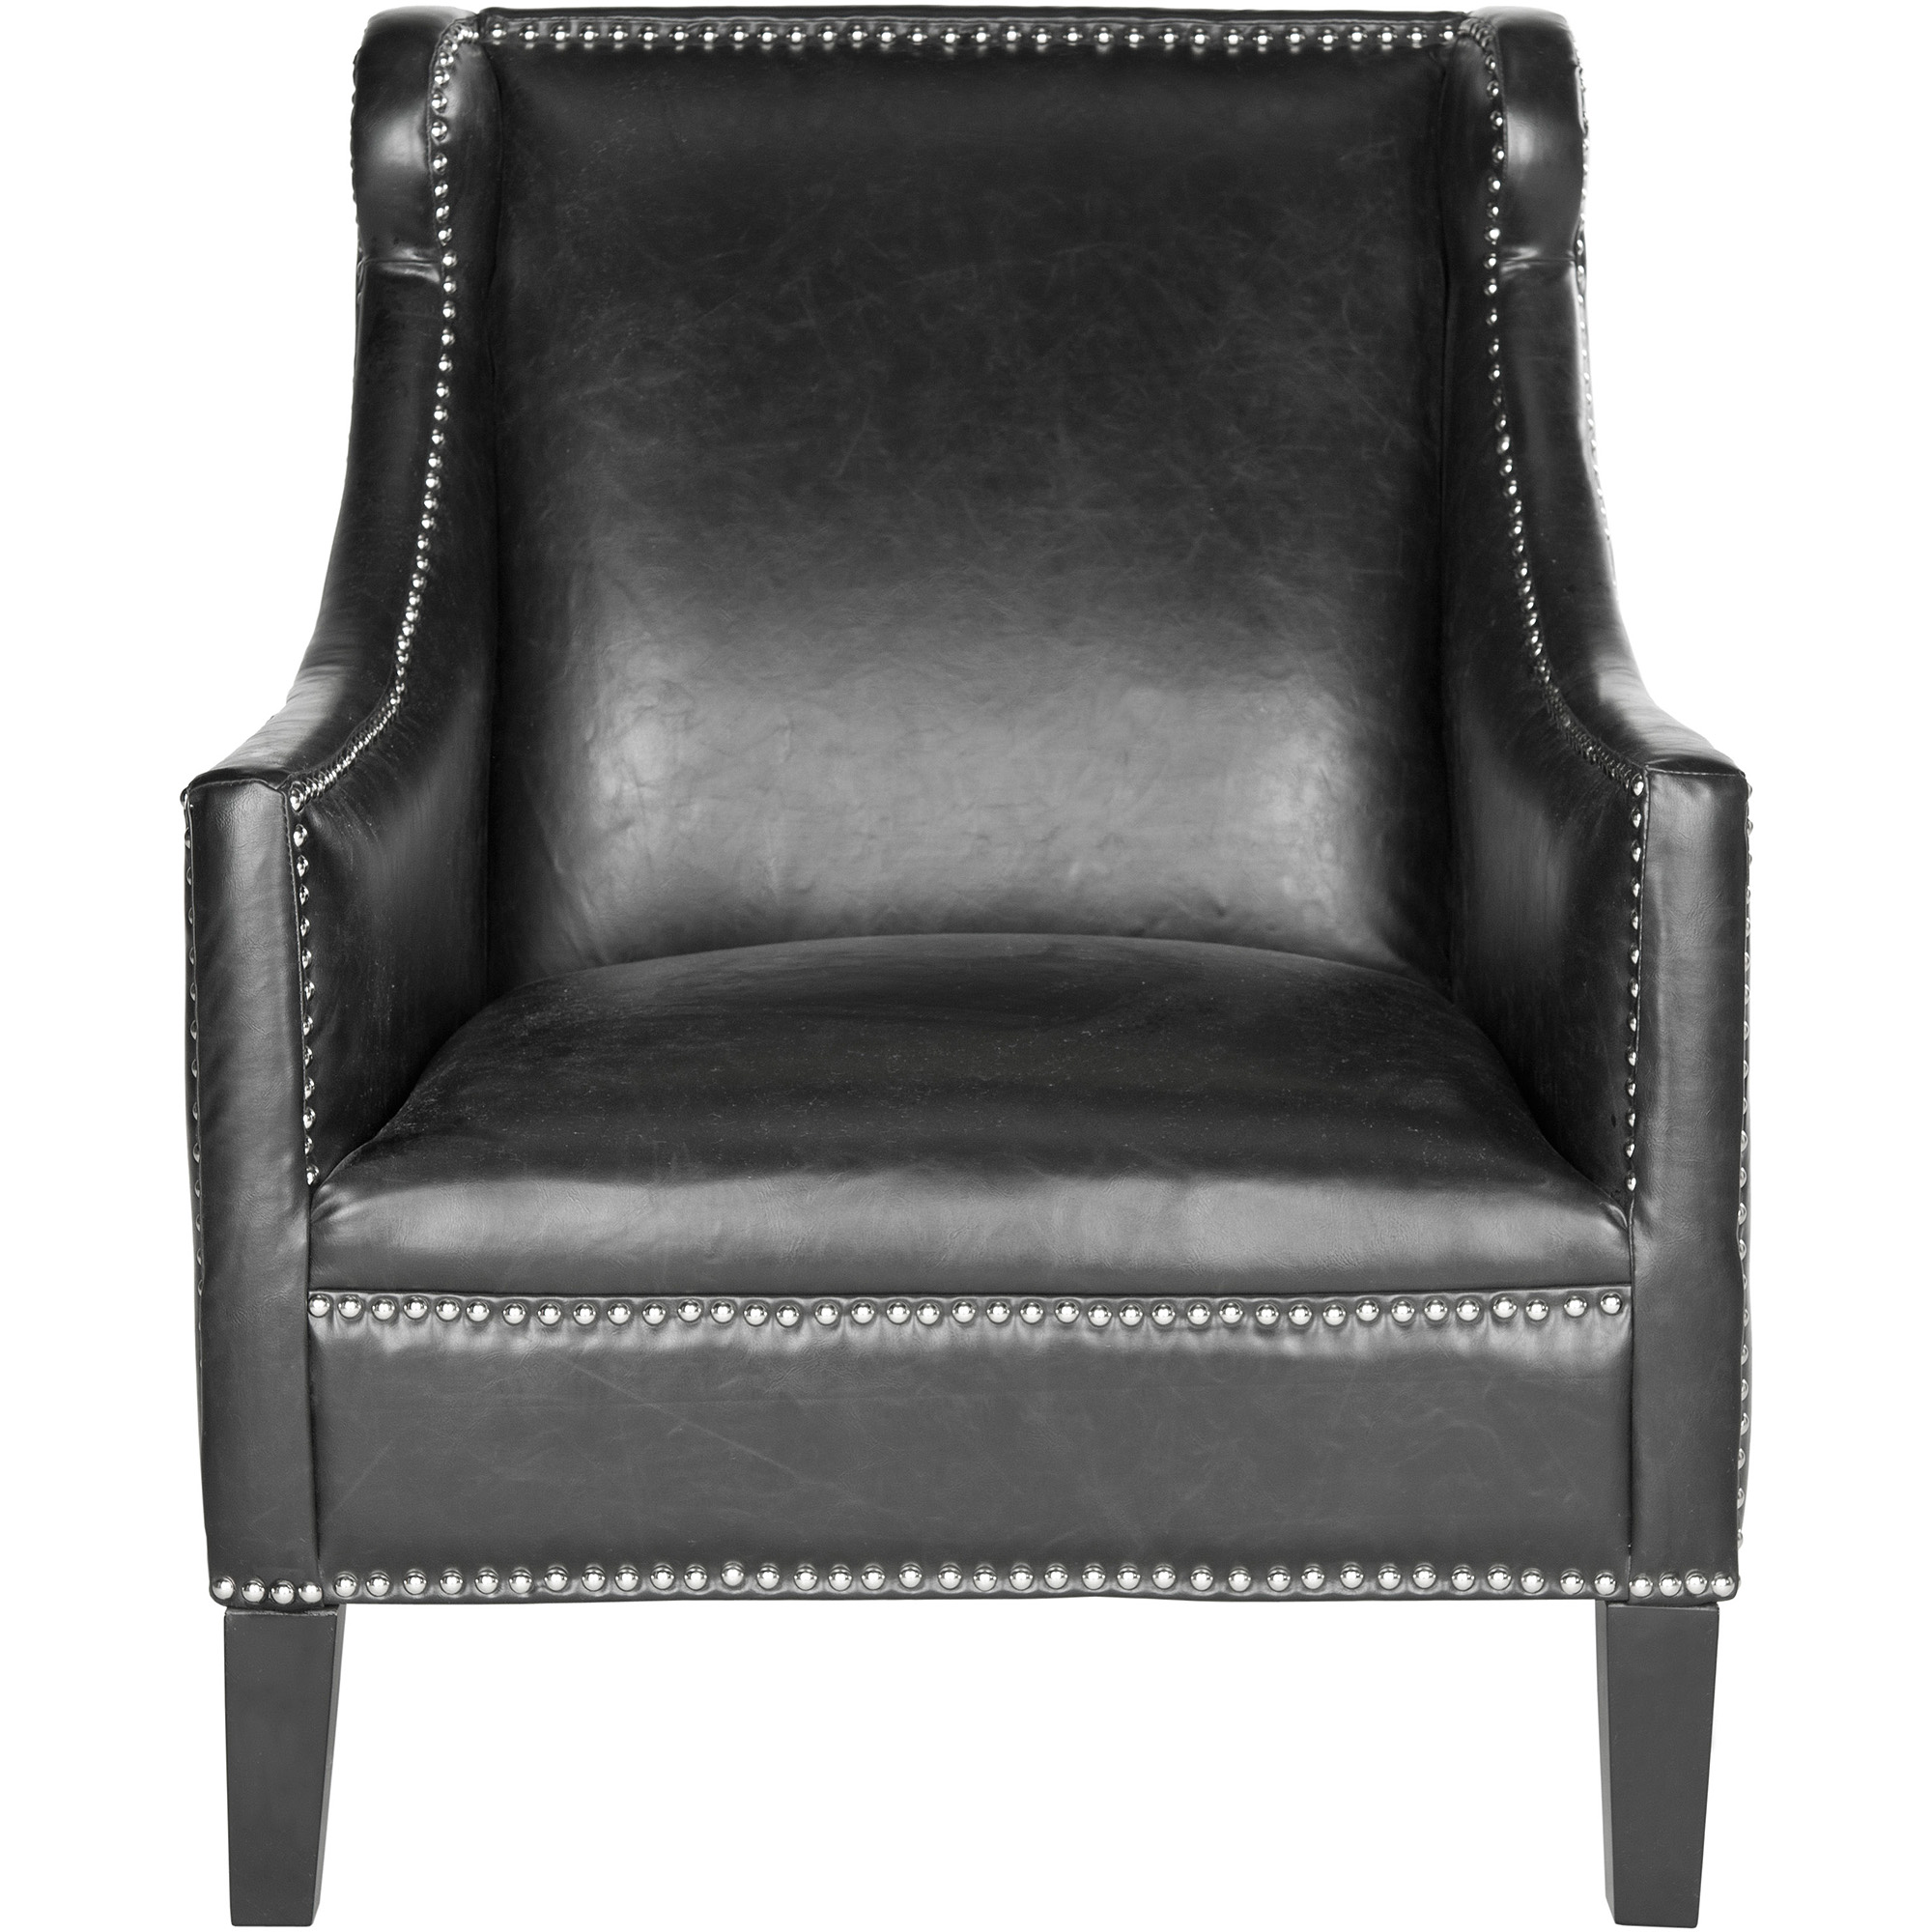 Safavieh Mckinley Bicast Leather Club Chair, Antique Black with Silver Nail Heads